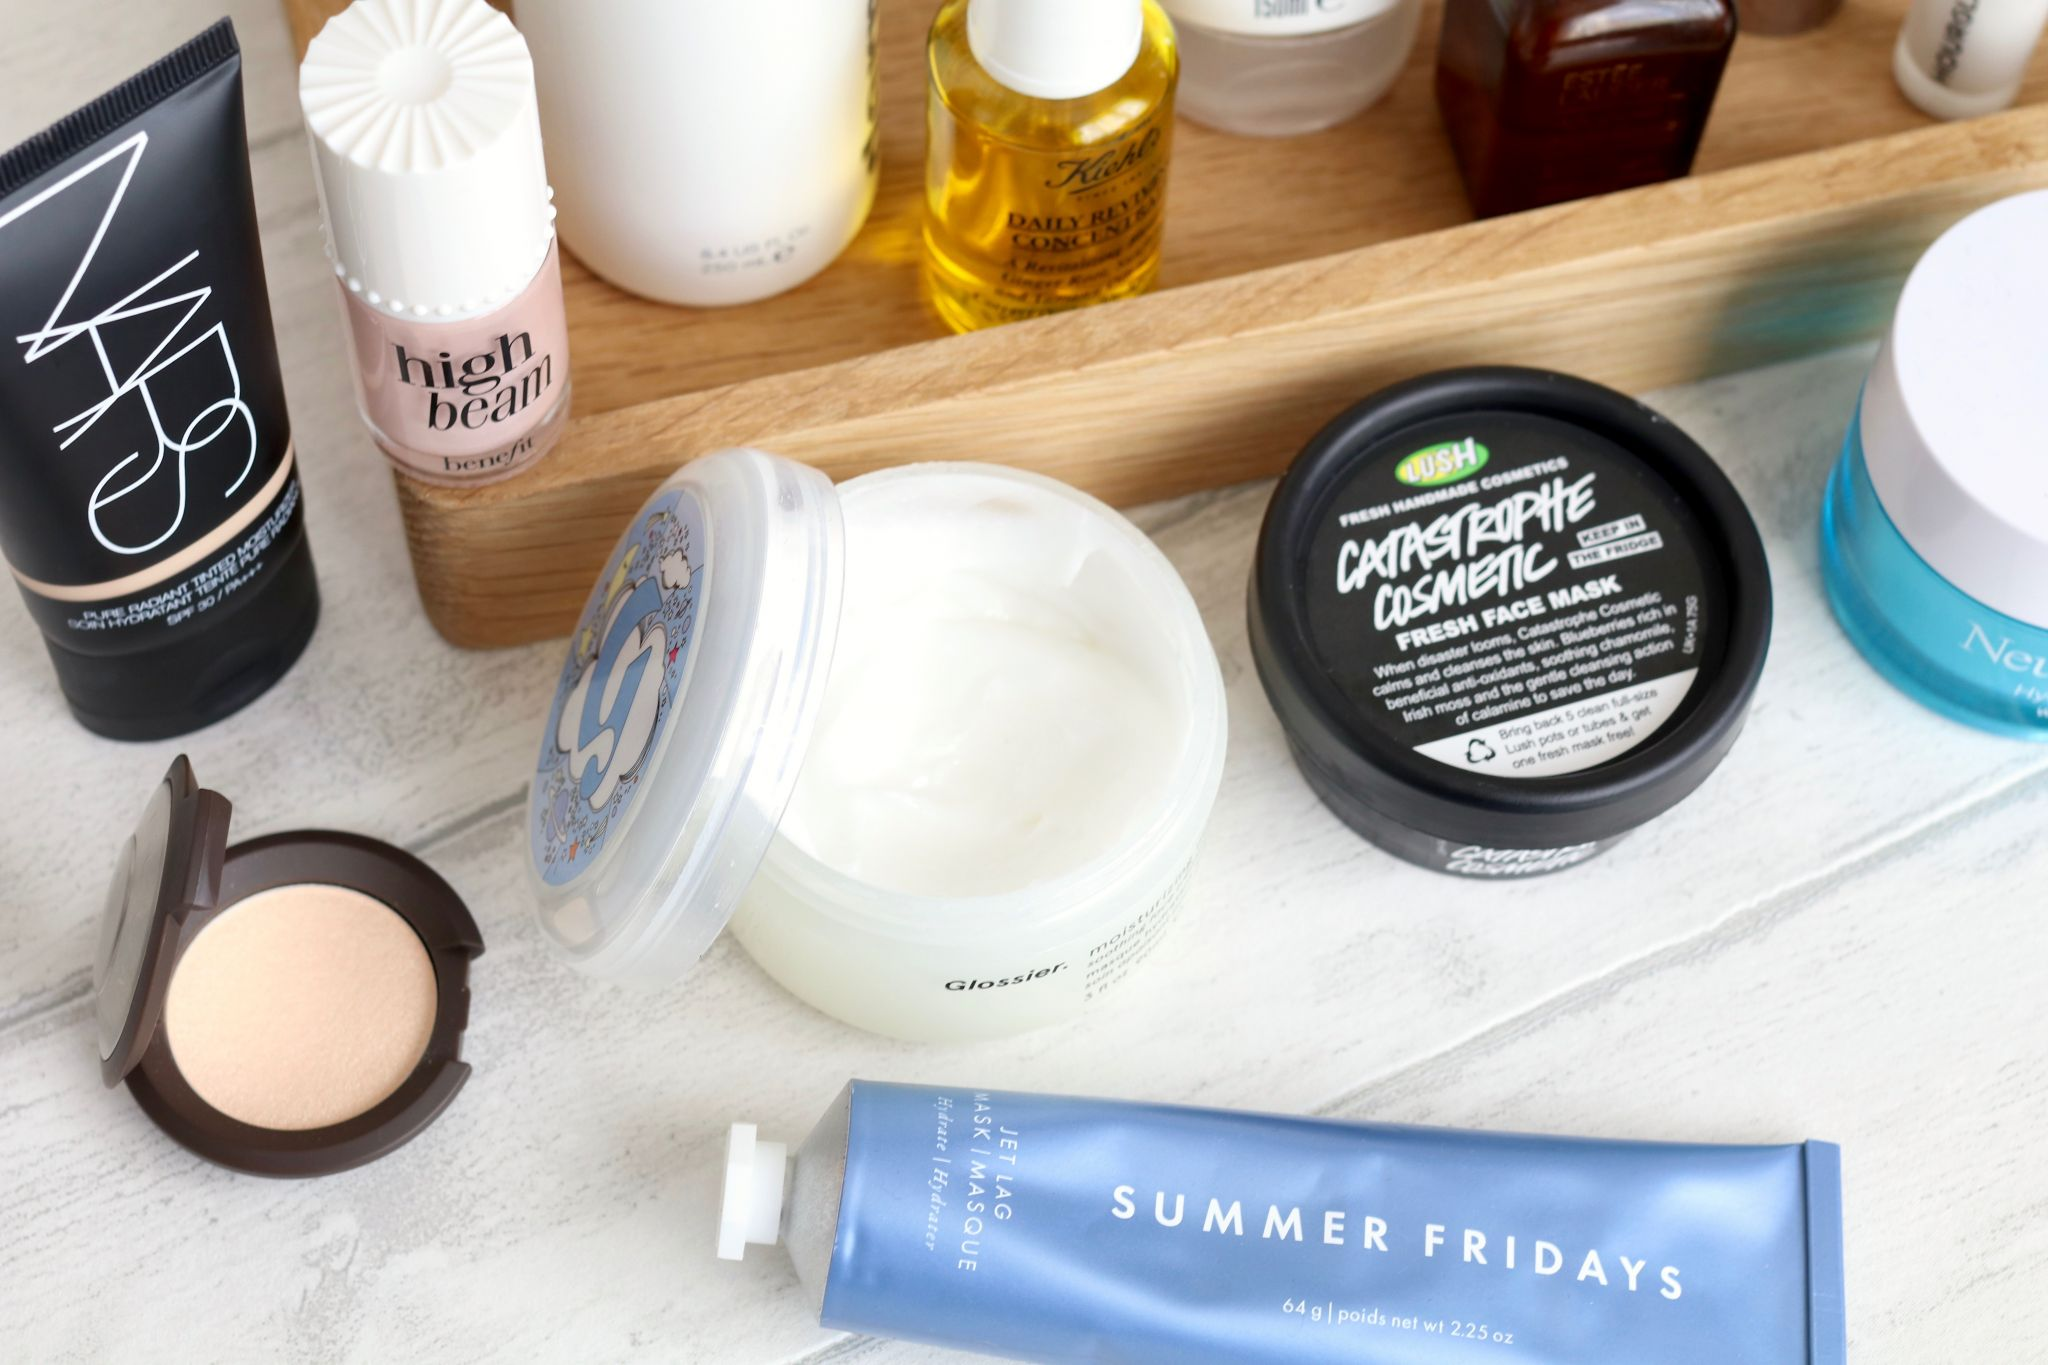 Mistakes to avoid if you have oily skin - Nars tinted moisturiser, Becca opal highlighter, Summer Fridays jet lag mask, Glossier mositure moon, Benefit high beam, Lush Catastrophe cosmetic